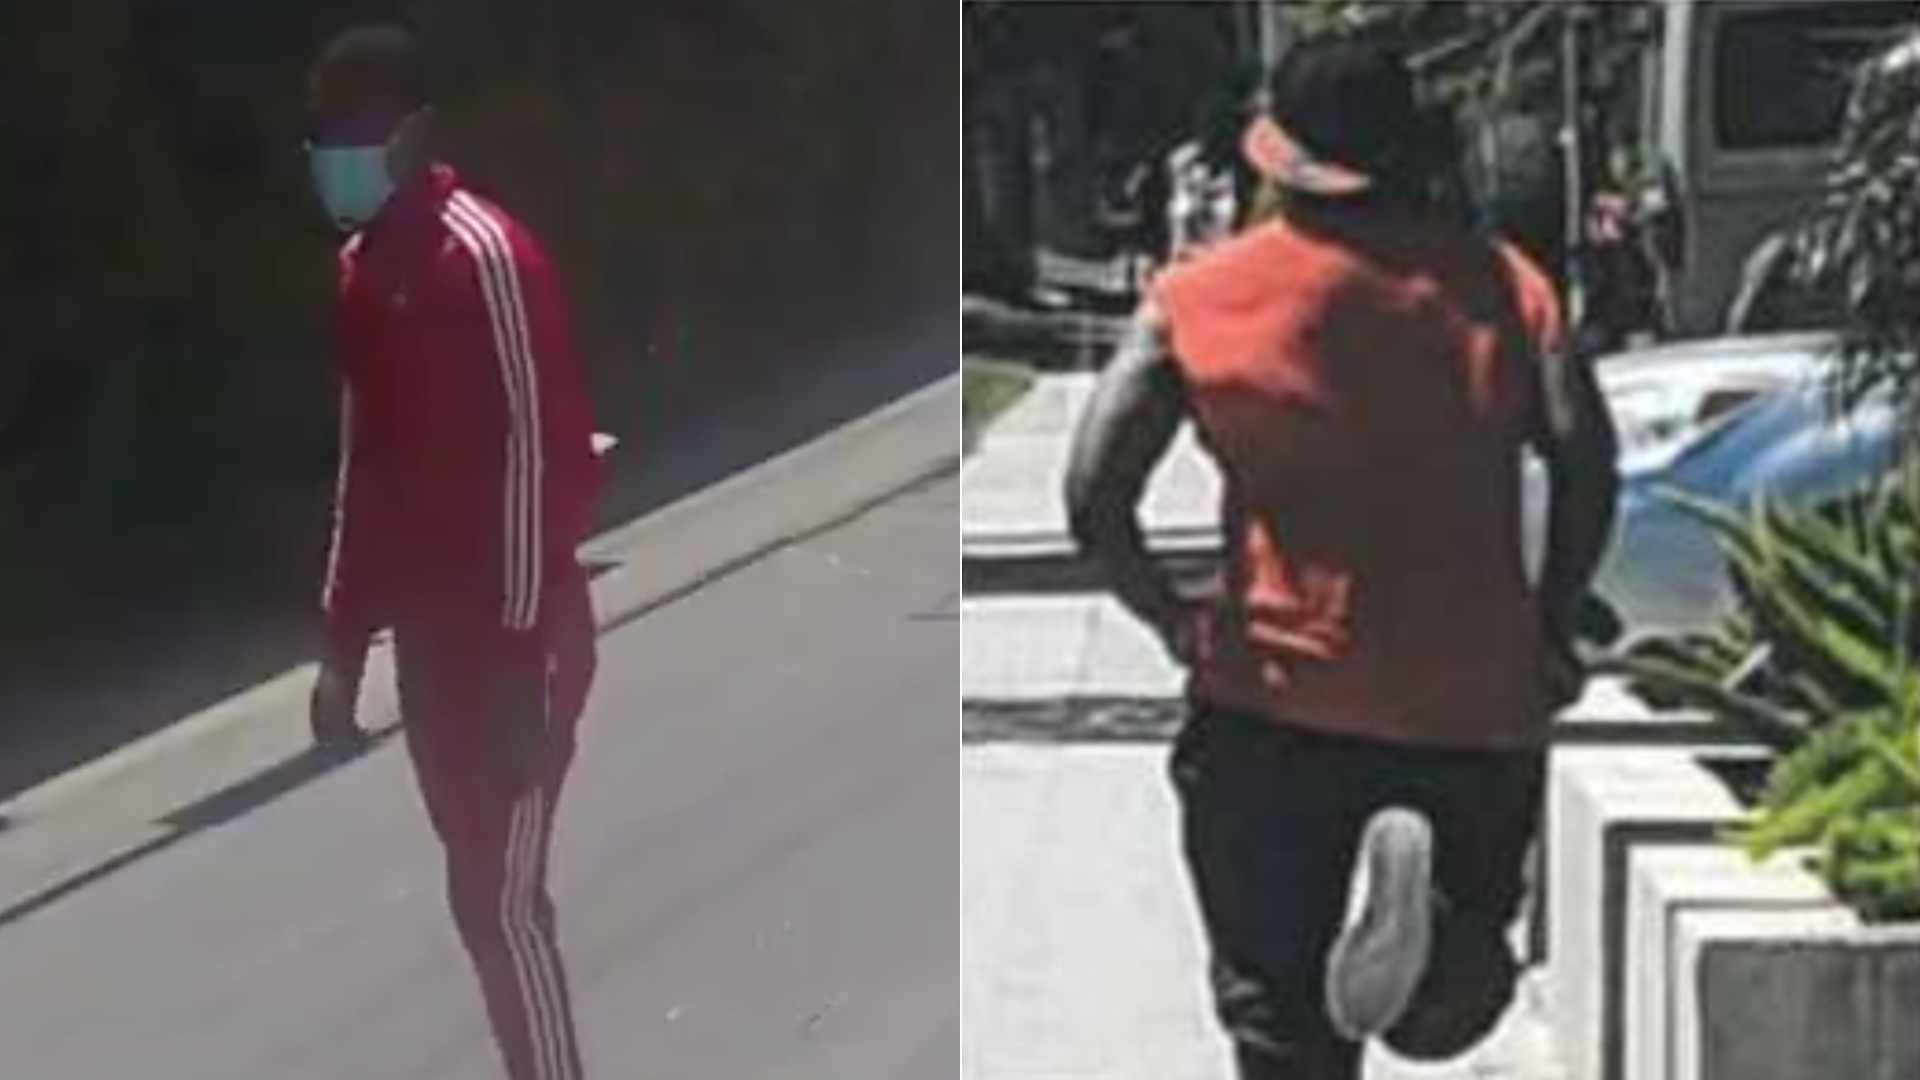 Andres Guardado Video Porno police seek 2 men accused of groping women on the streets of